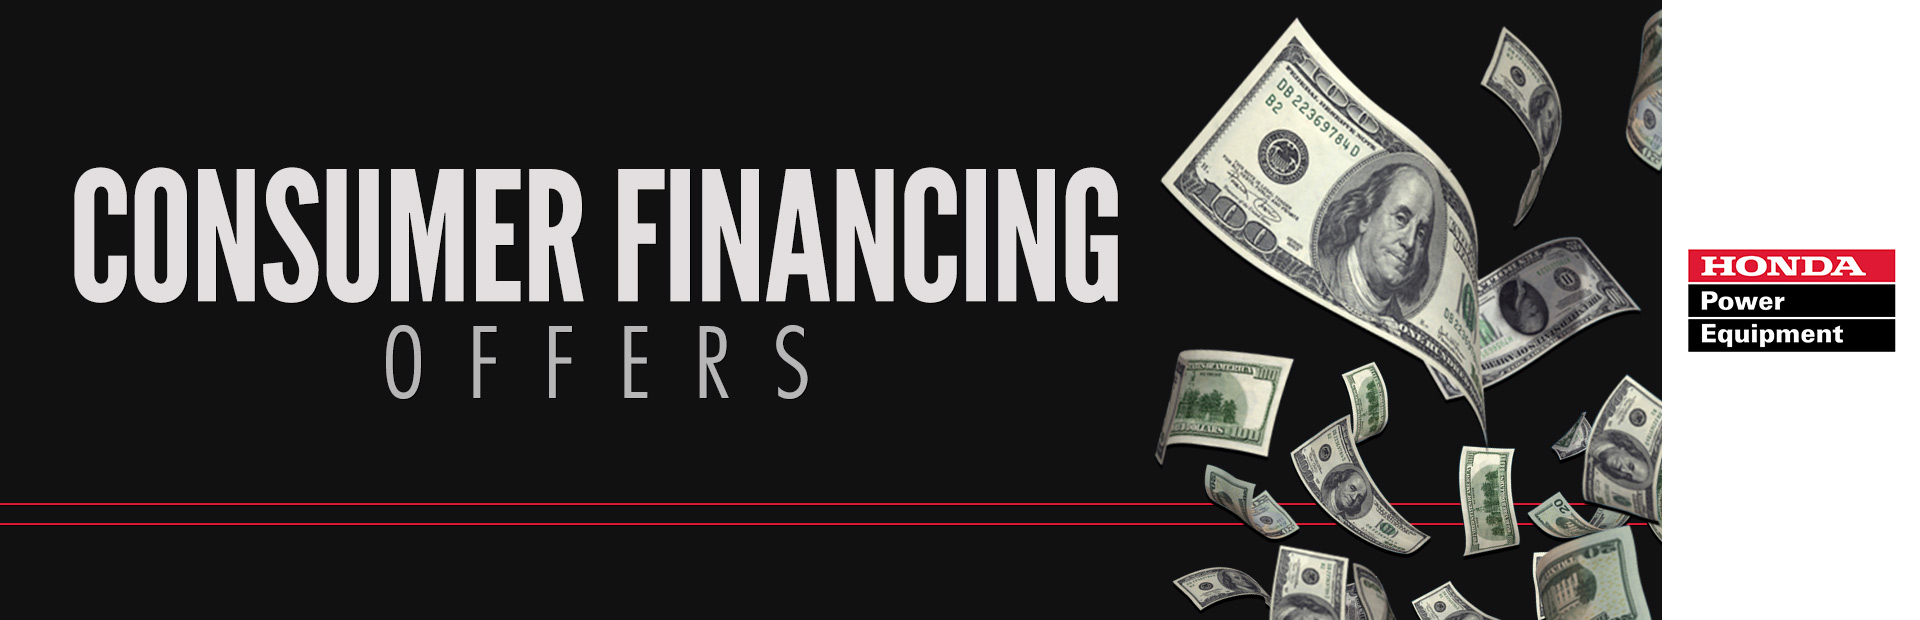 Honda Power Equipment: Consumer Financing Offers